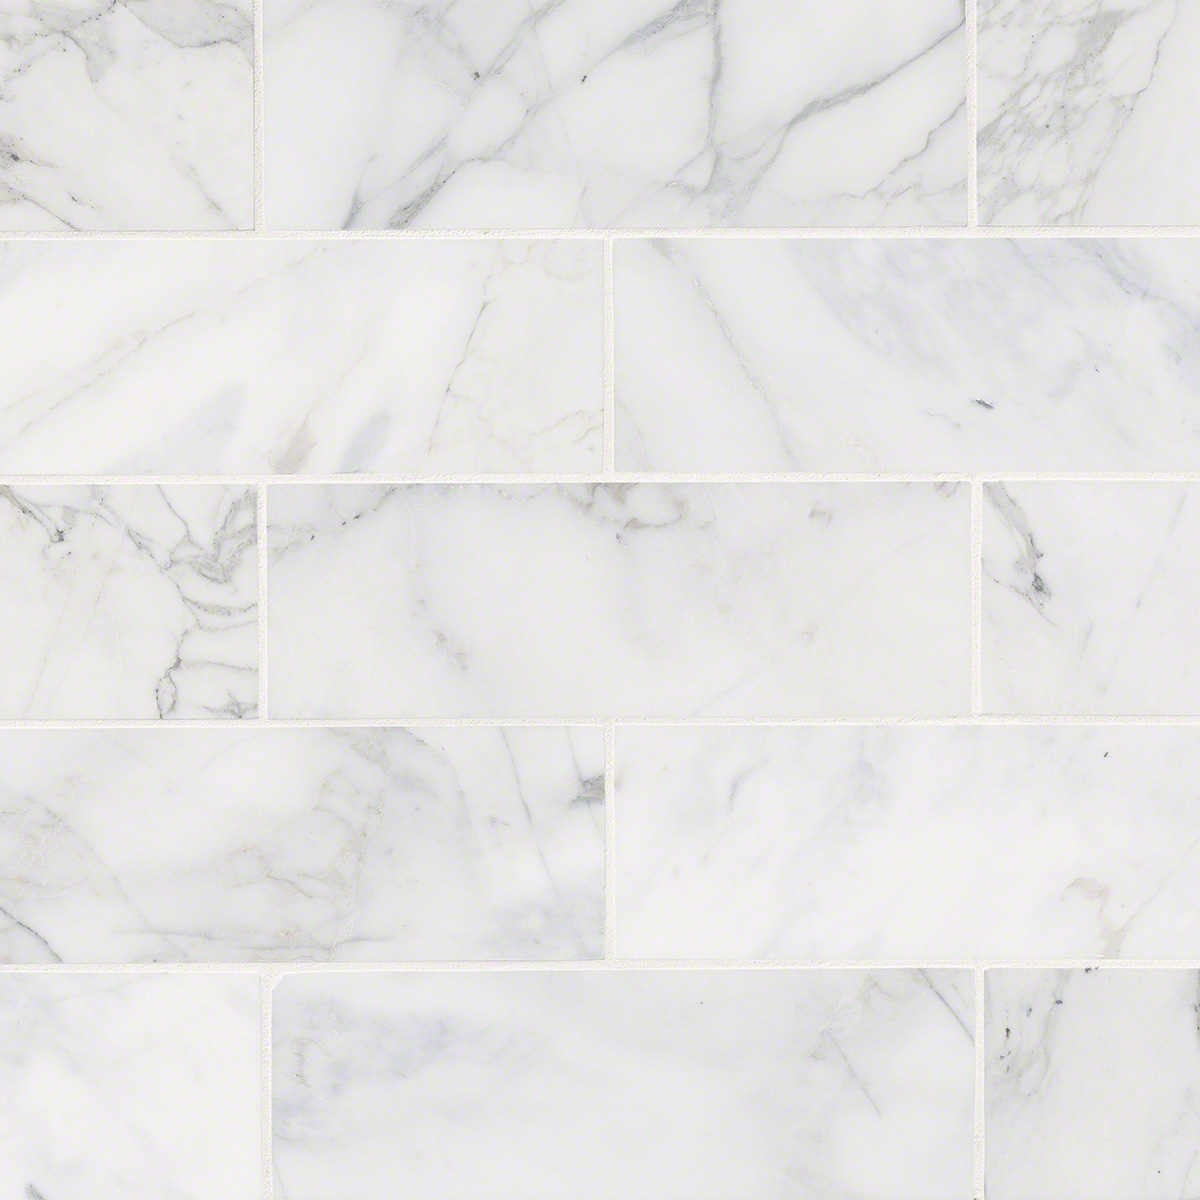 Calacatta Cressa Subway Tile 4x12 White Subway Tile